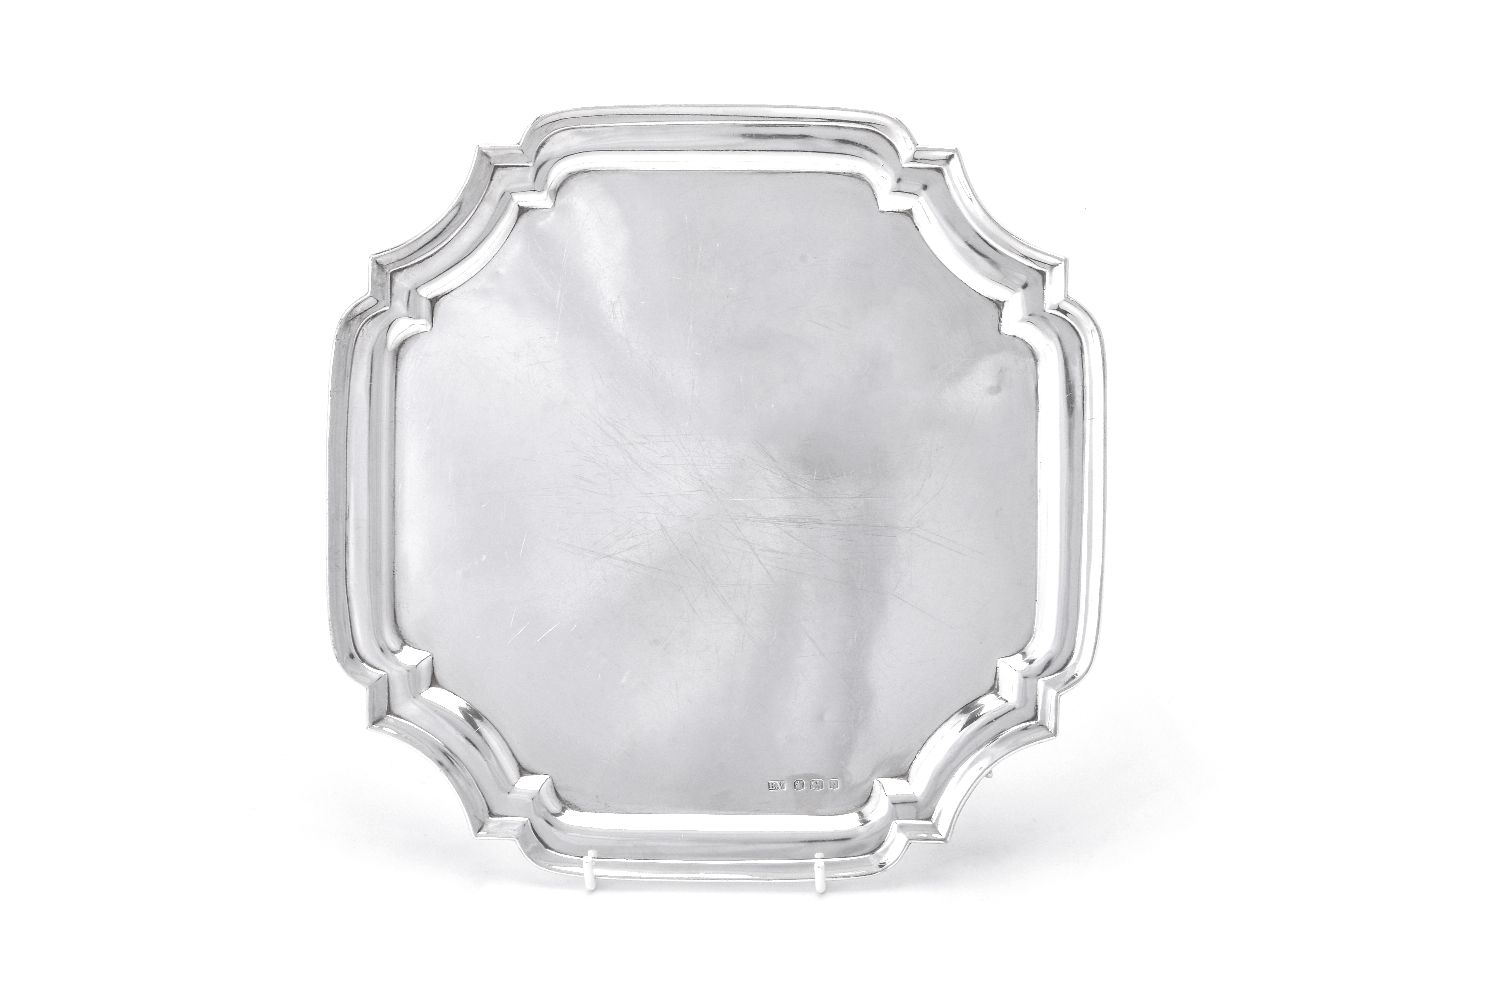 Lot 619 - A silver shaped square salver by Viners